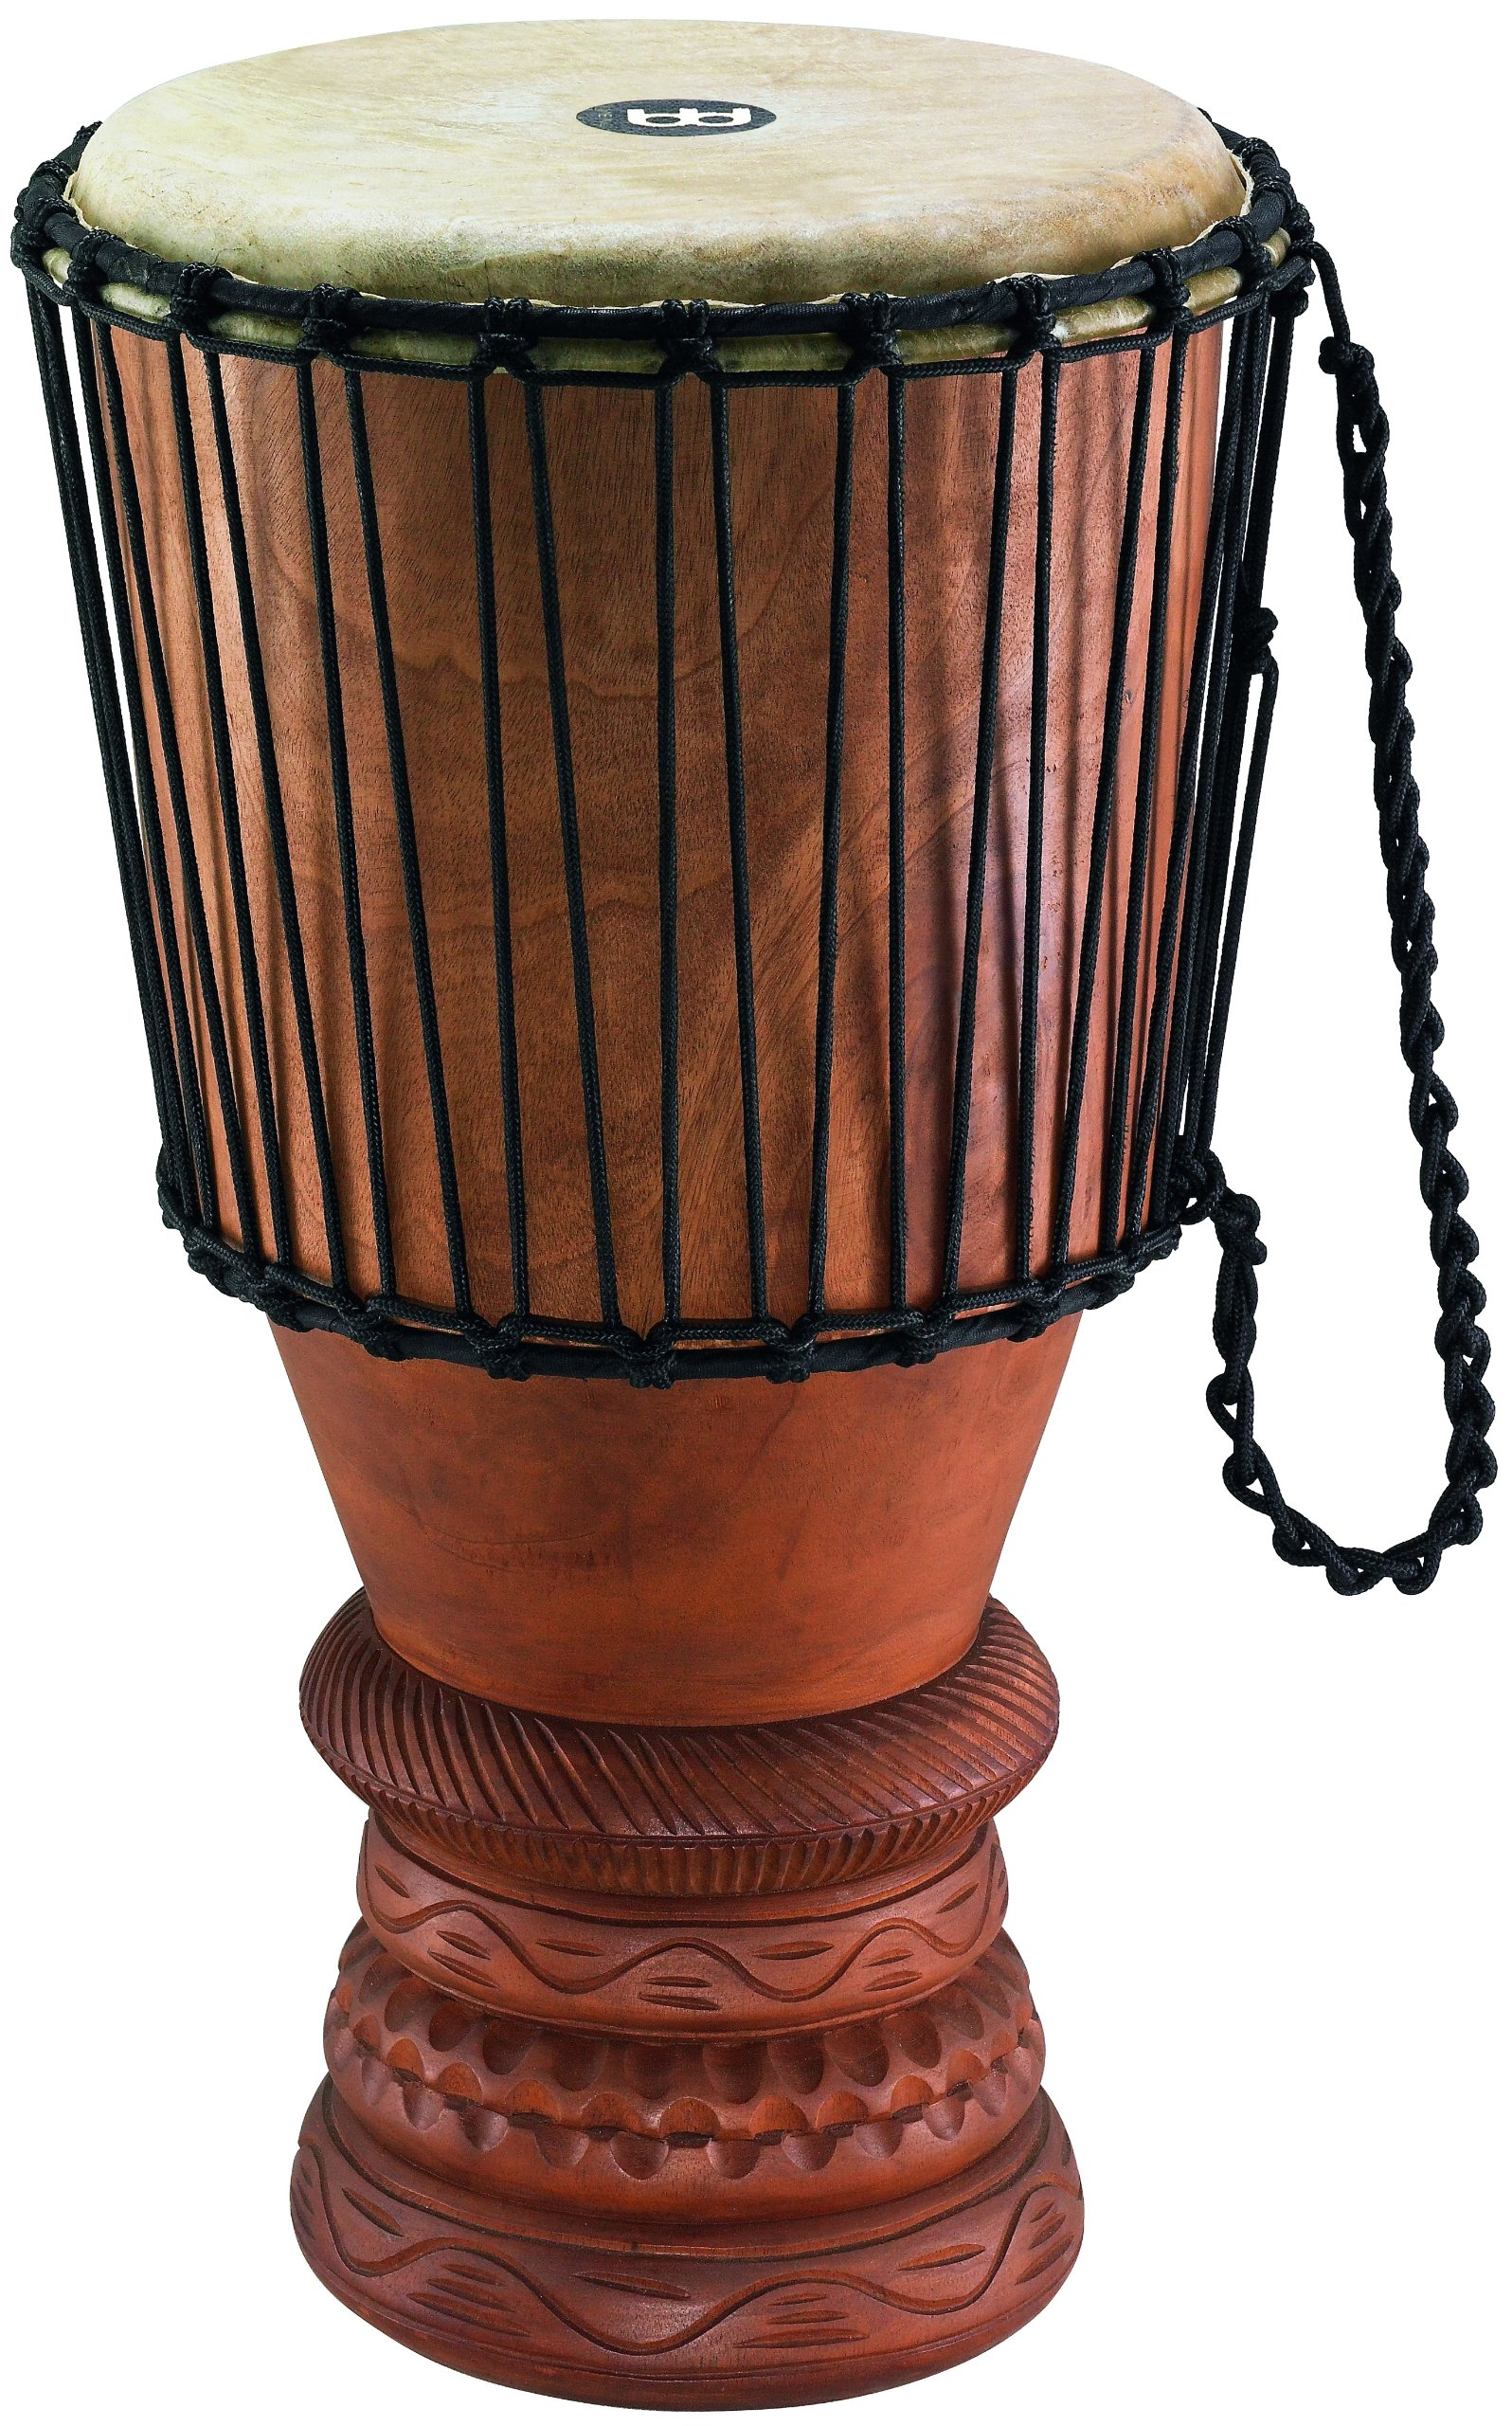 Meinl Percussion ABGB-L Large 12-Inch African Wood Bougarabou, Brown by Meinl Percussion